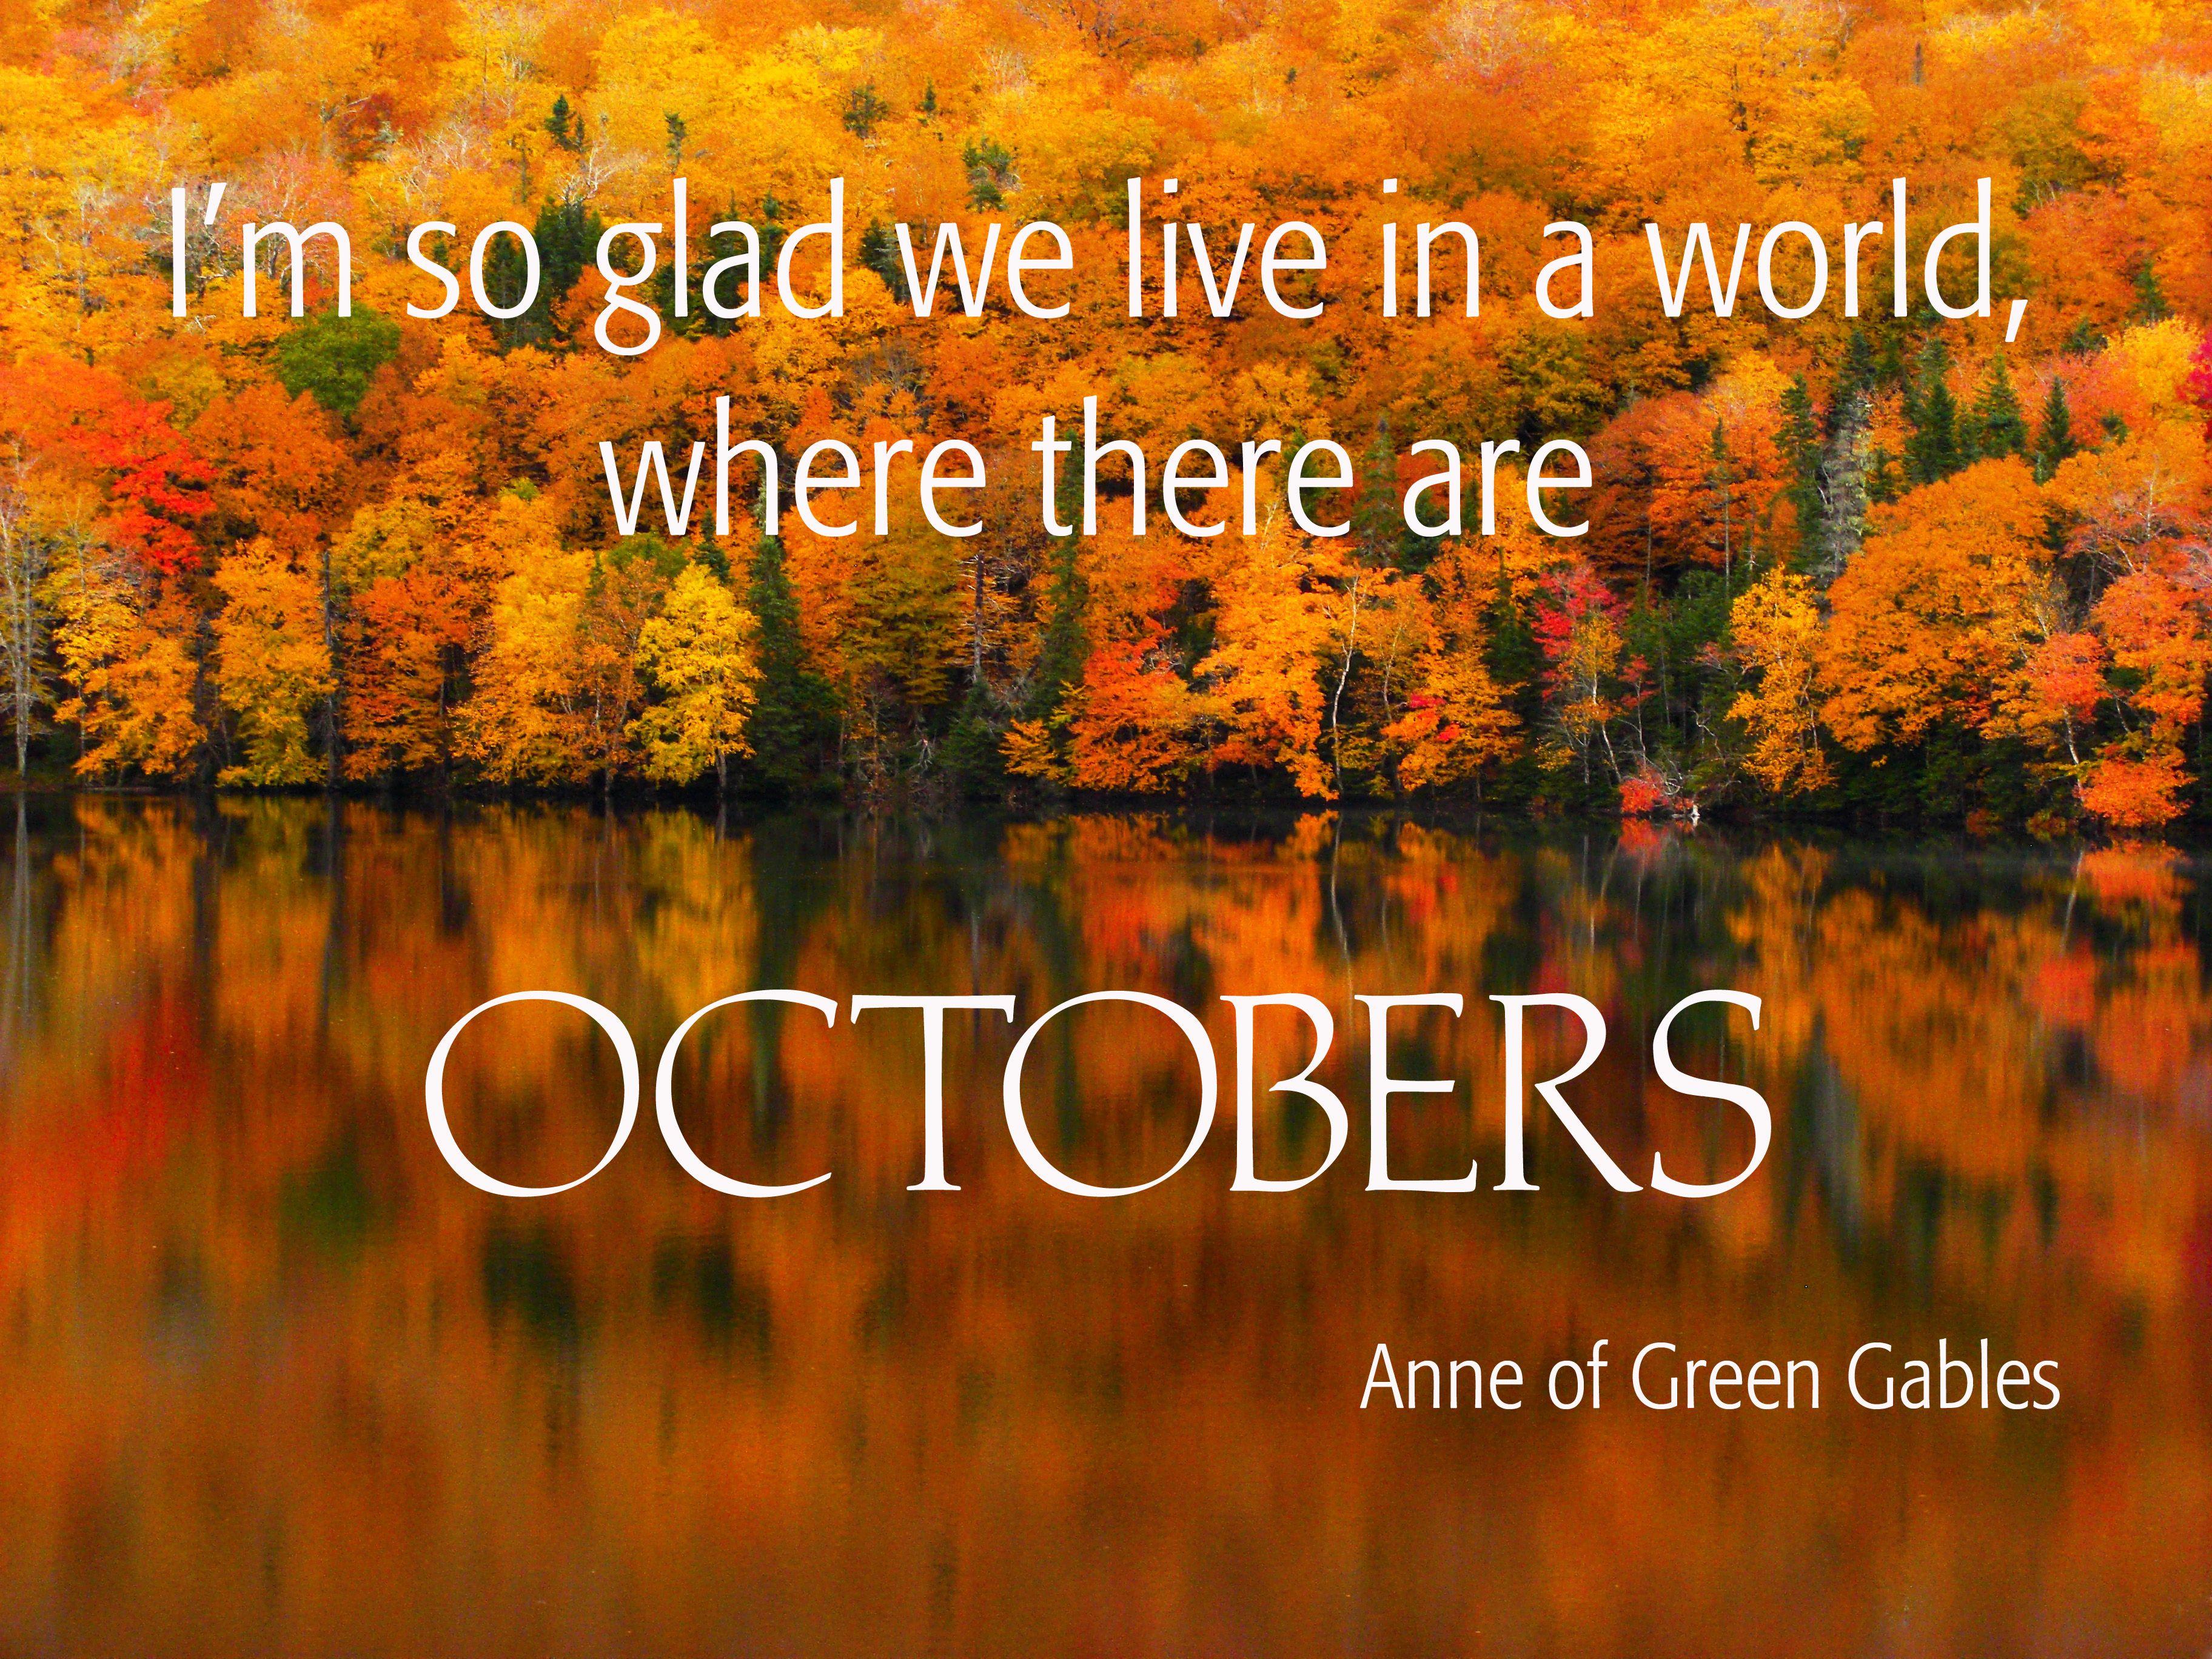 3648x2736 Hello October quote with wallpaper